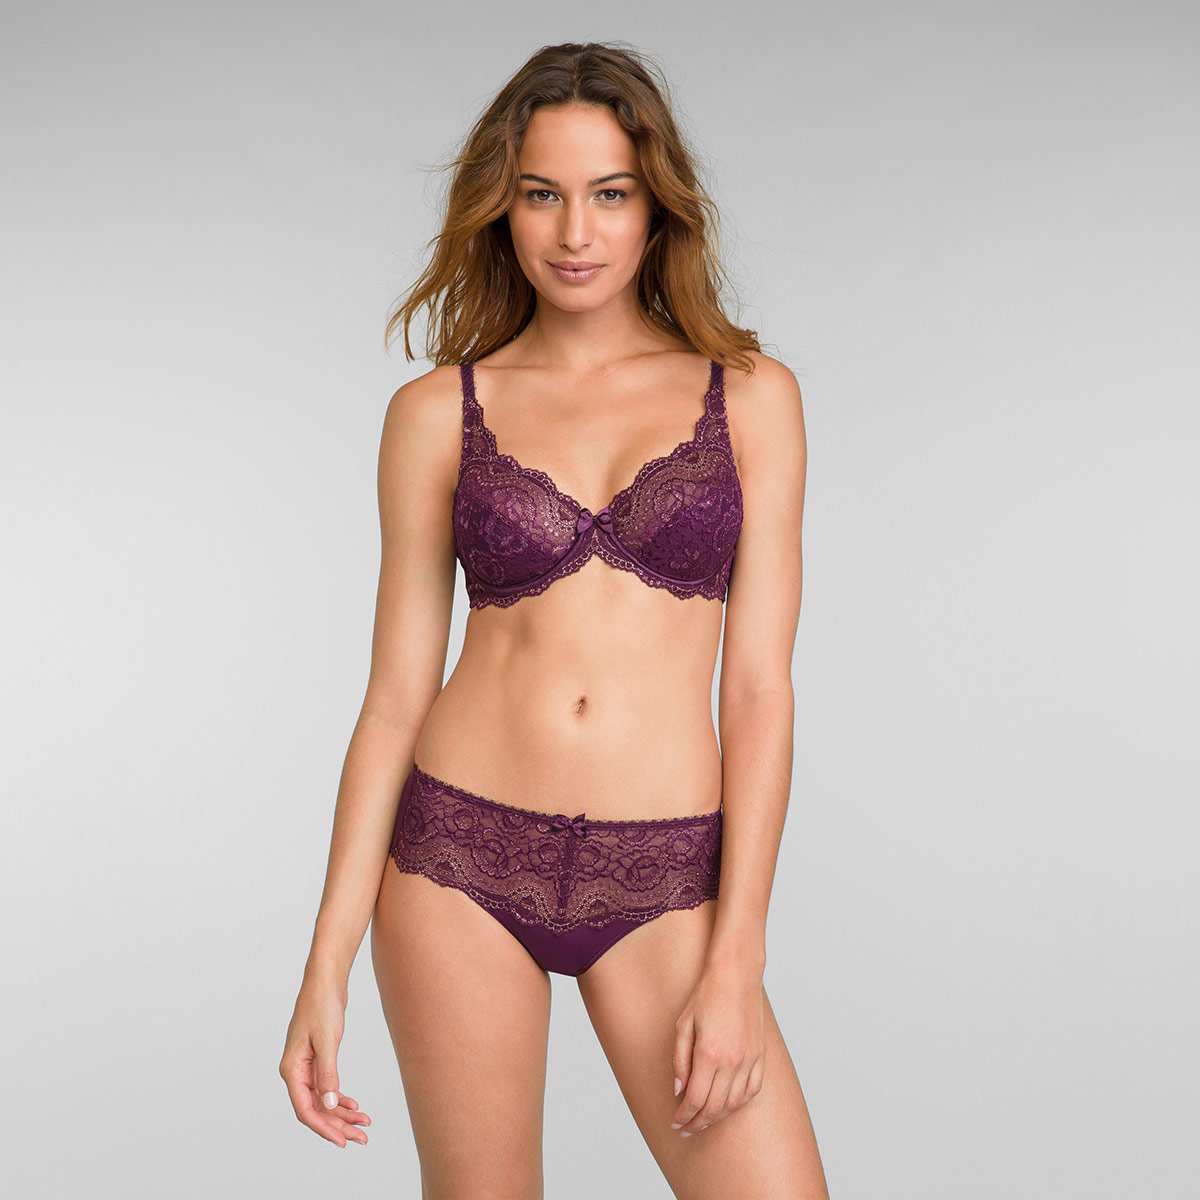 Full Cup Lace Bra in Dark Berry Lurex Flower Elegance, , PLAYTEX